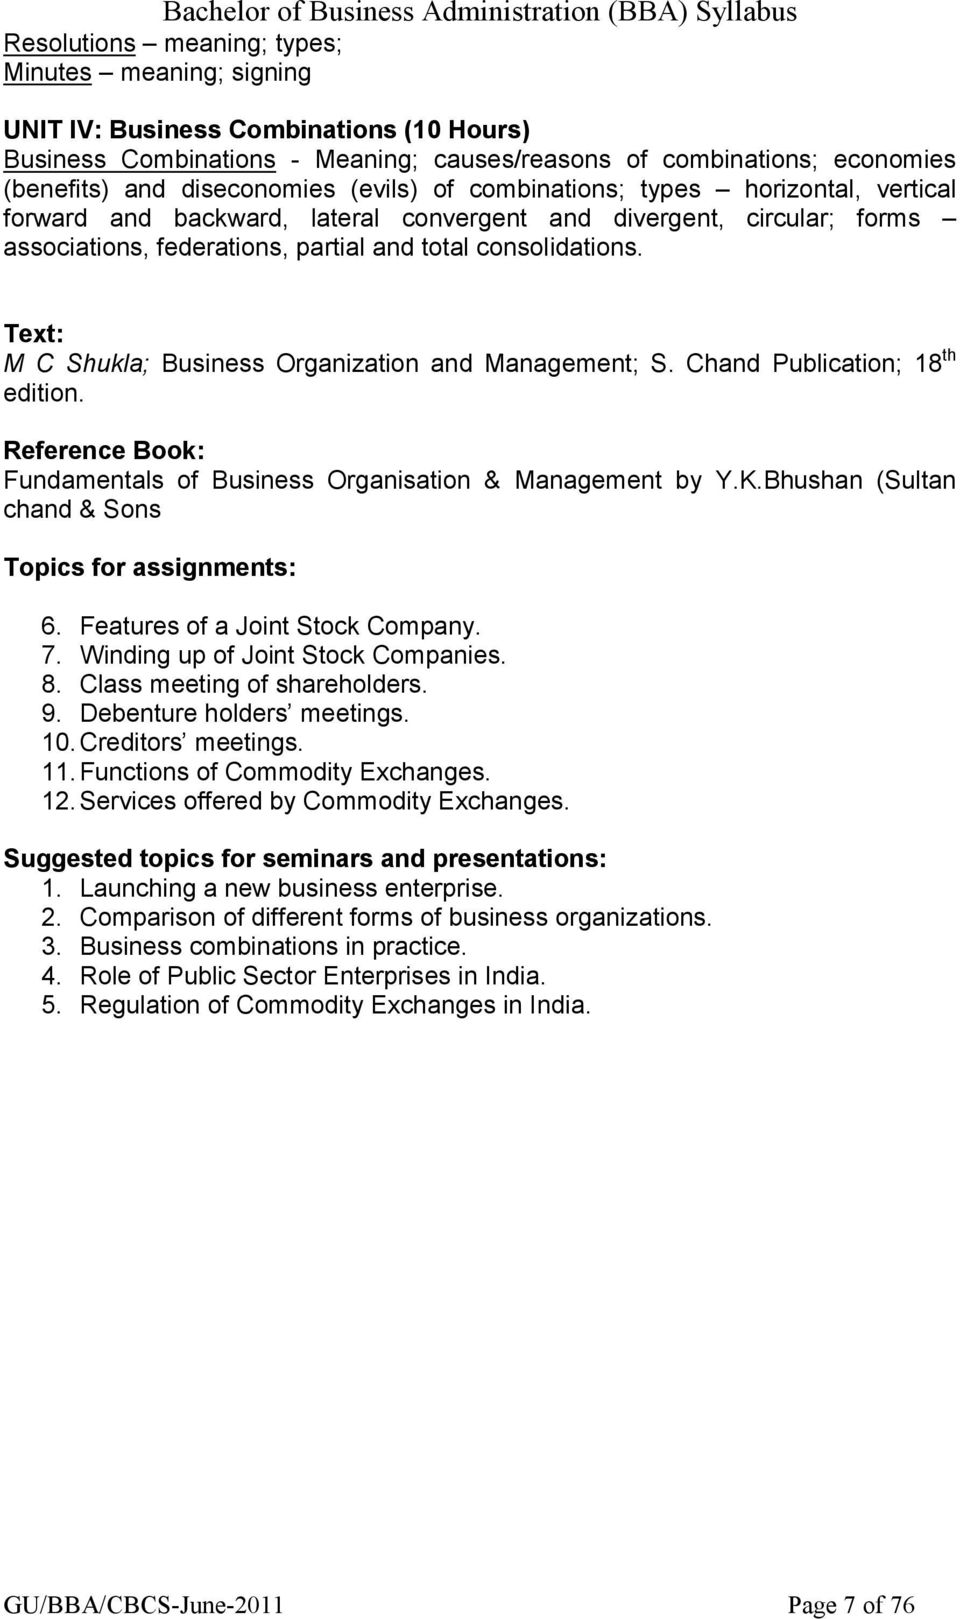 Text: M C Shukla; Business Organization and Management; S. Chand Publication; 18 th edition. Reference Book: Fundamentals of Business Organisation & Management by Y.K.